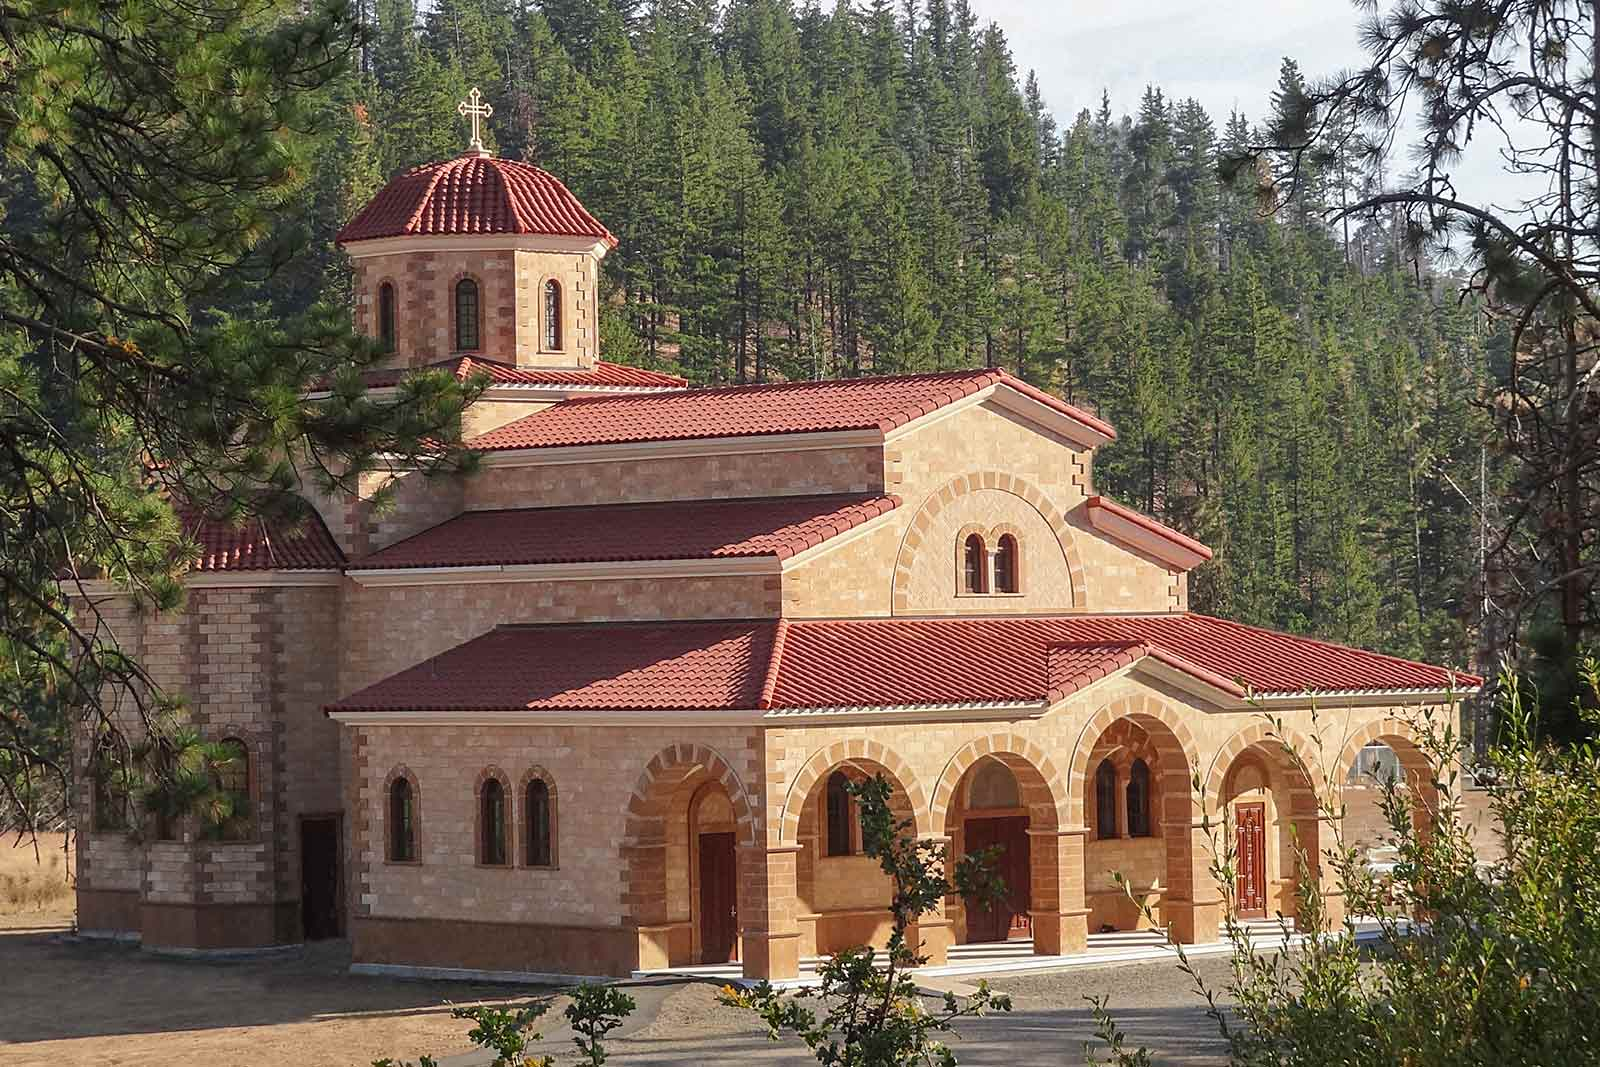 Holy Monastery of St. John the Forerunner